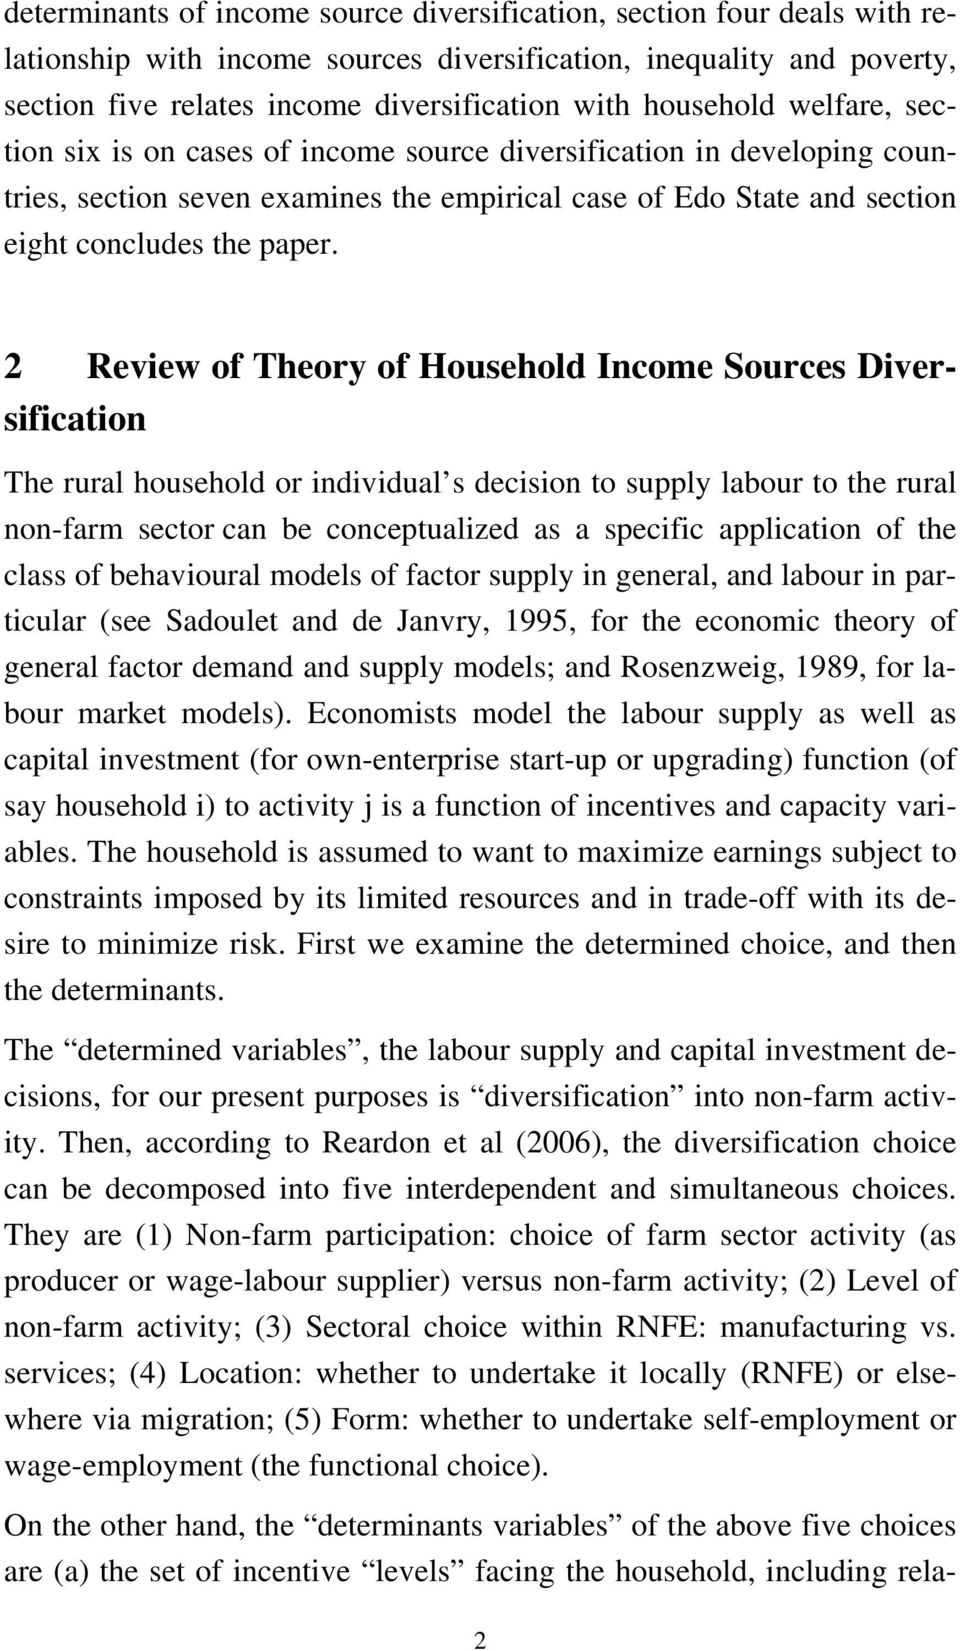 2 Review of Theory of Household Income Sources Diversification The rural household or individual s decision to supply labour to the rural non-farm sector can be conceptualized as a specific